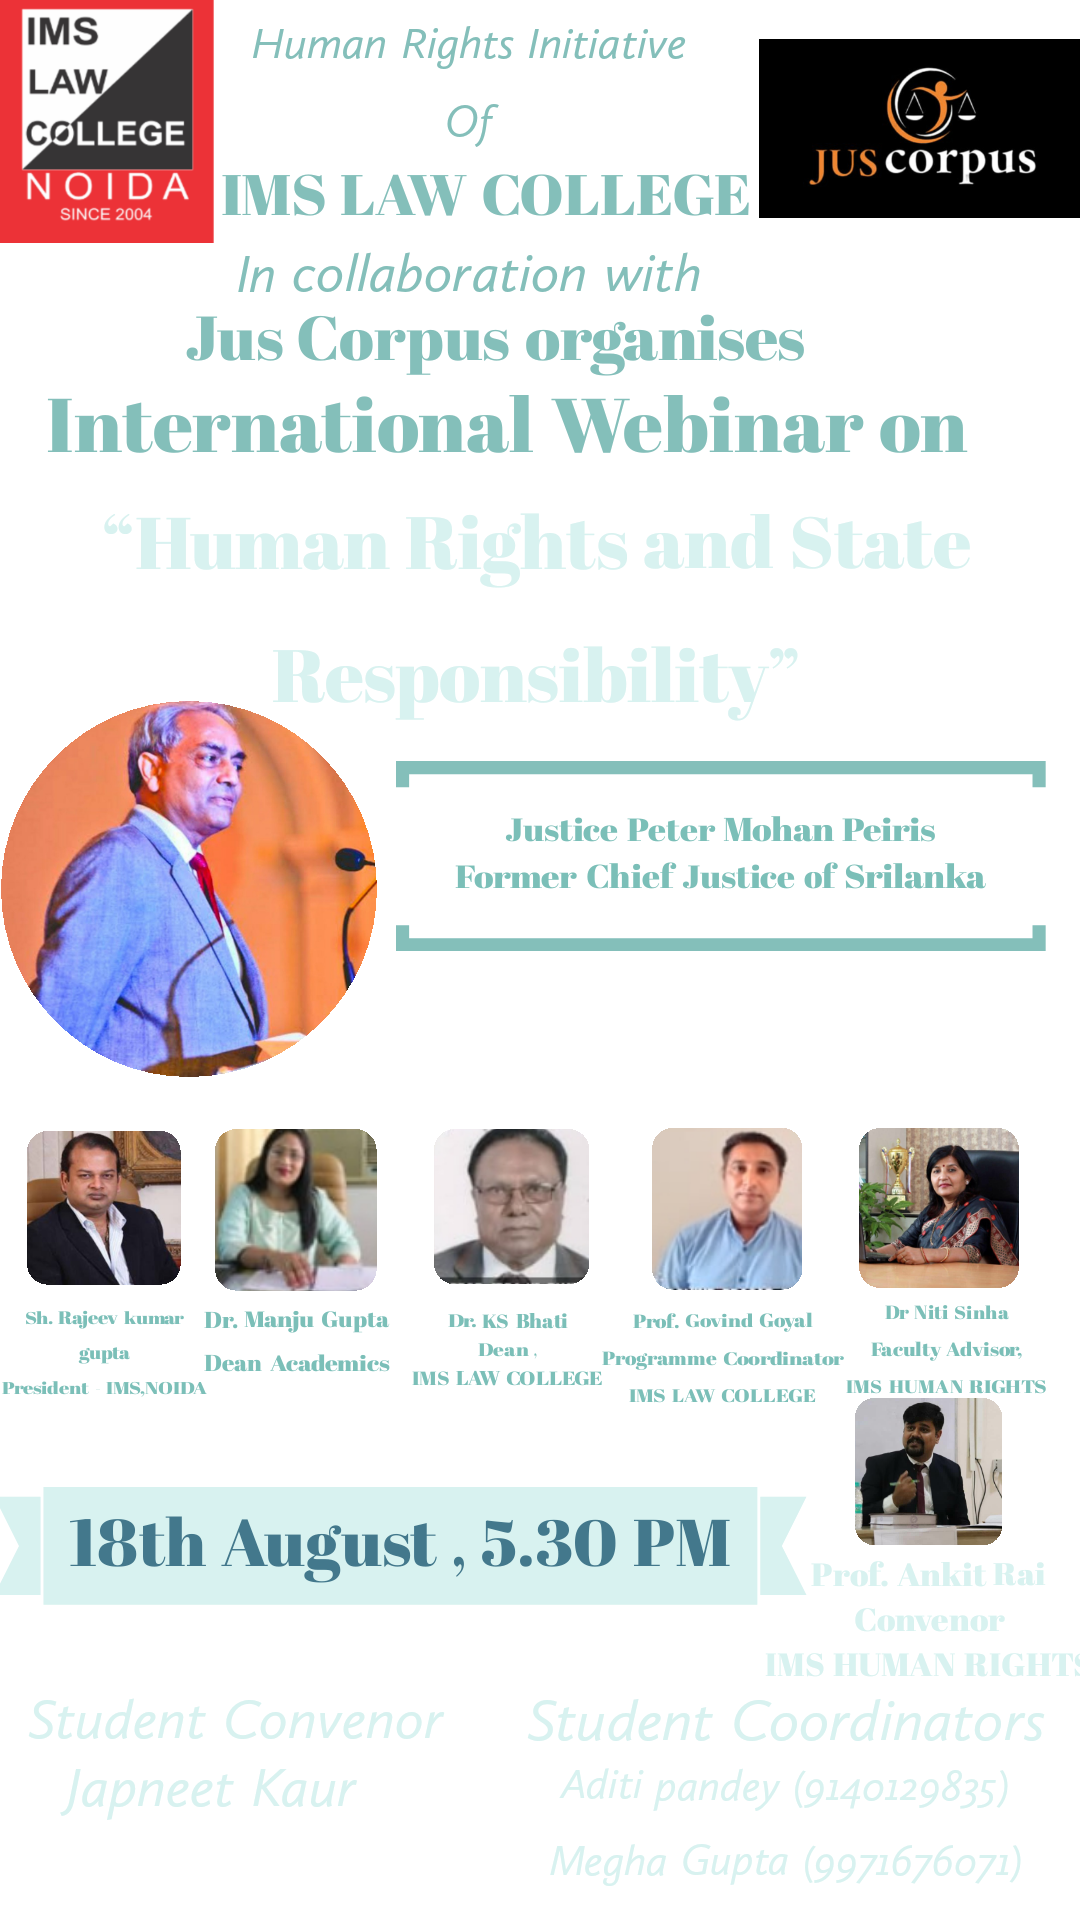 Webinar on HHuman Rights and State Responsibility by IMS Law College